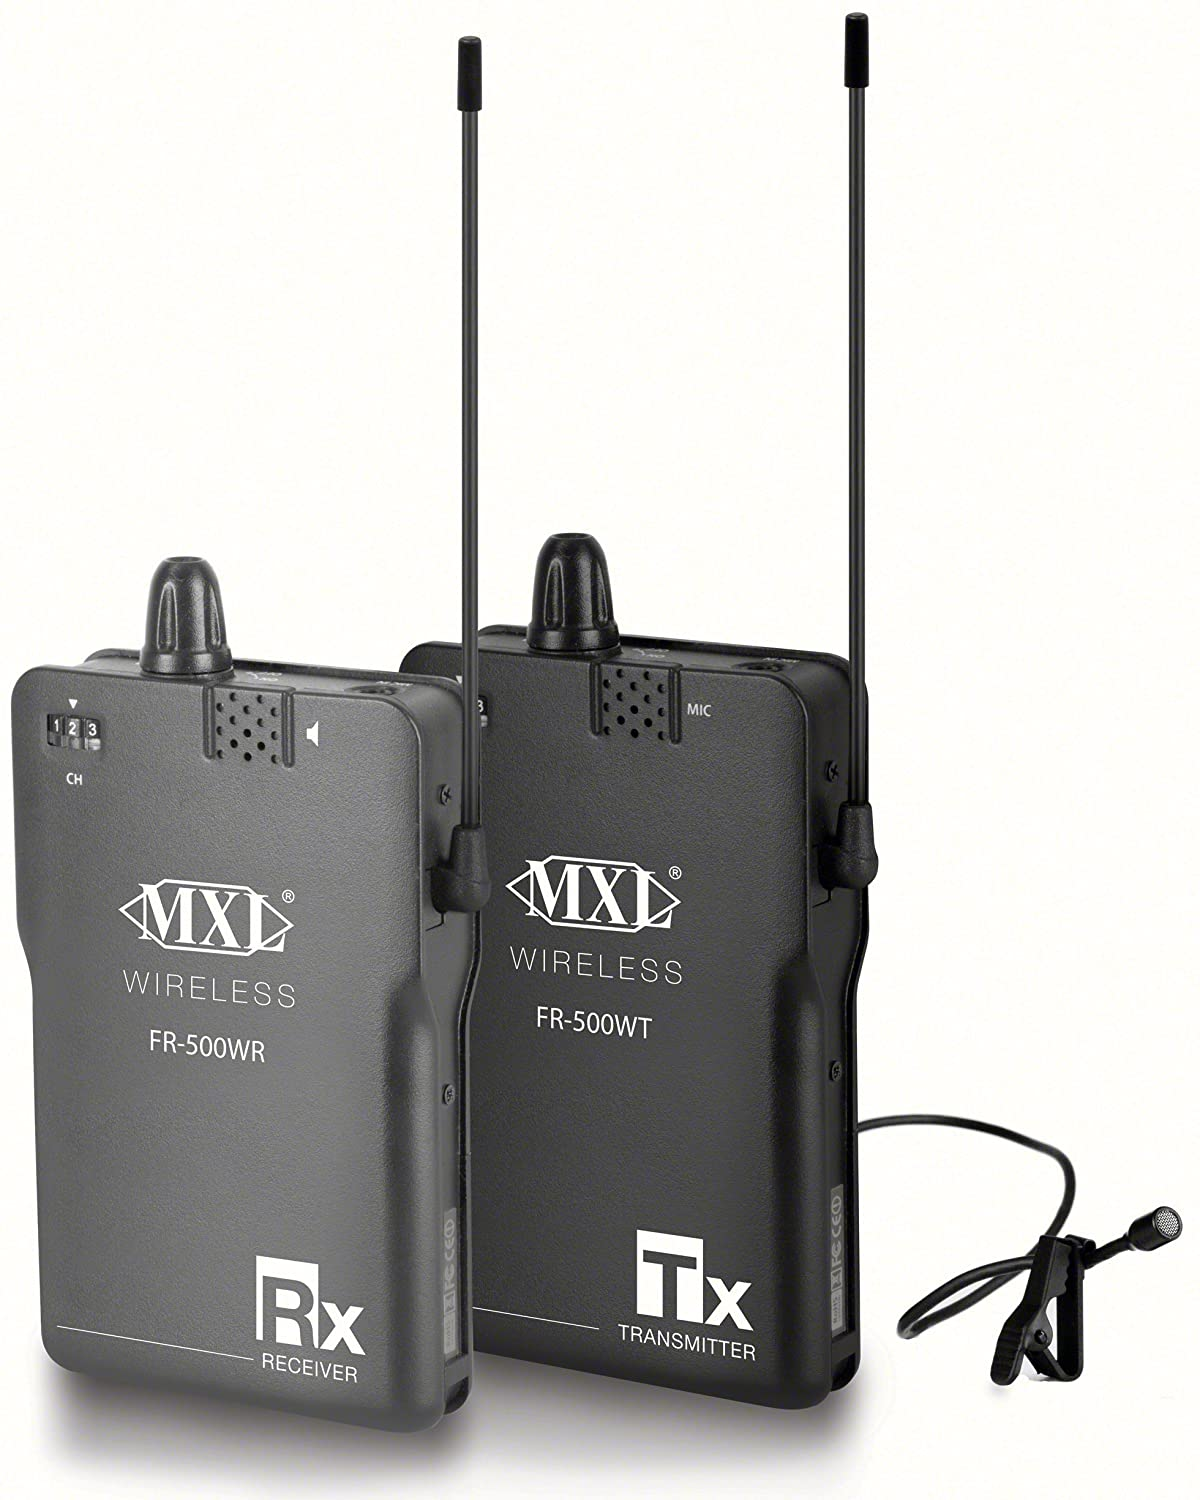 Amazon.com: MXL MicsFR-500WK Professional Portable Wireless Audio ...